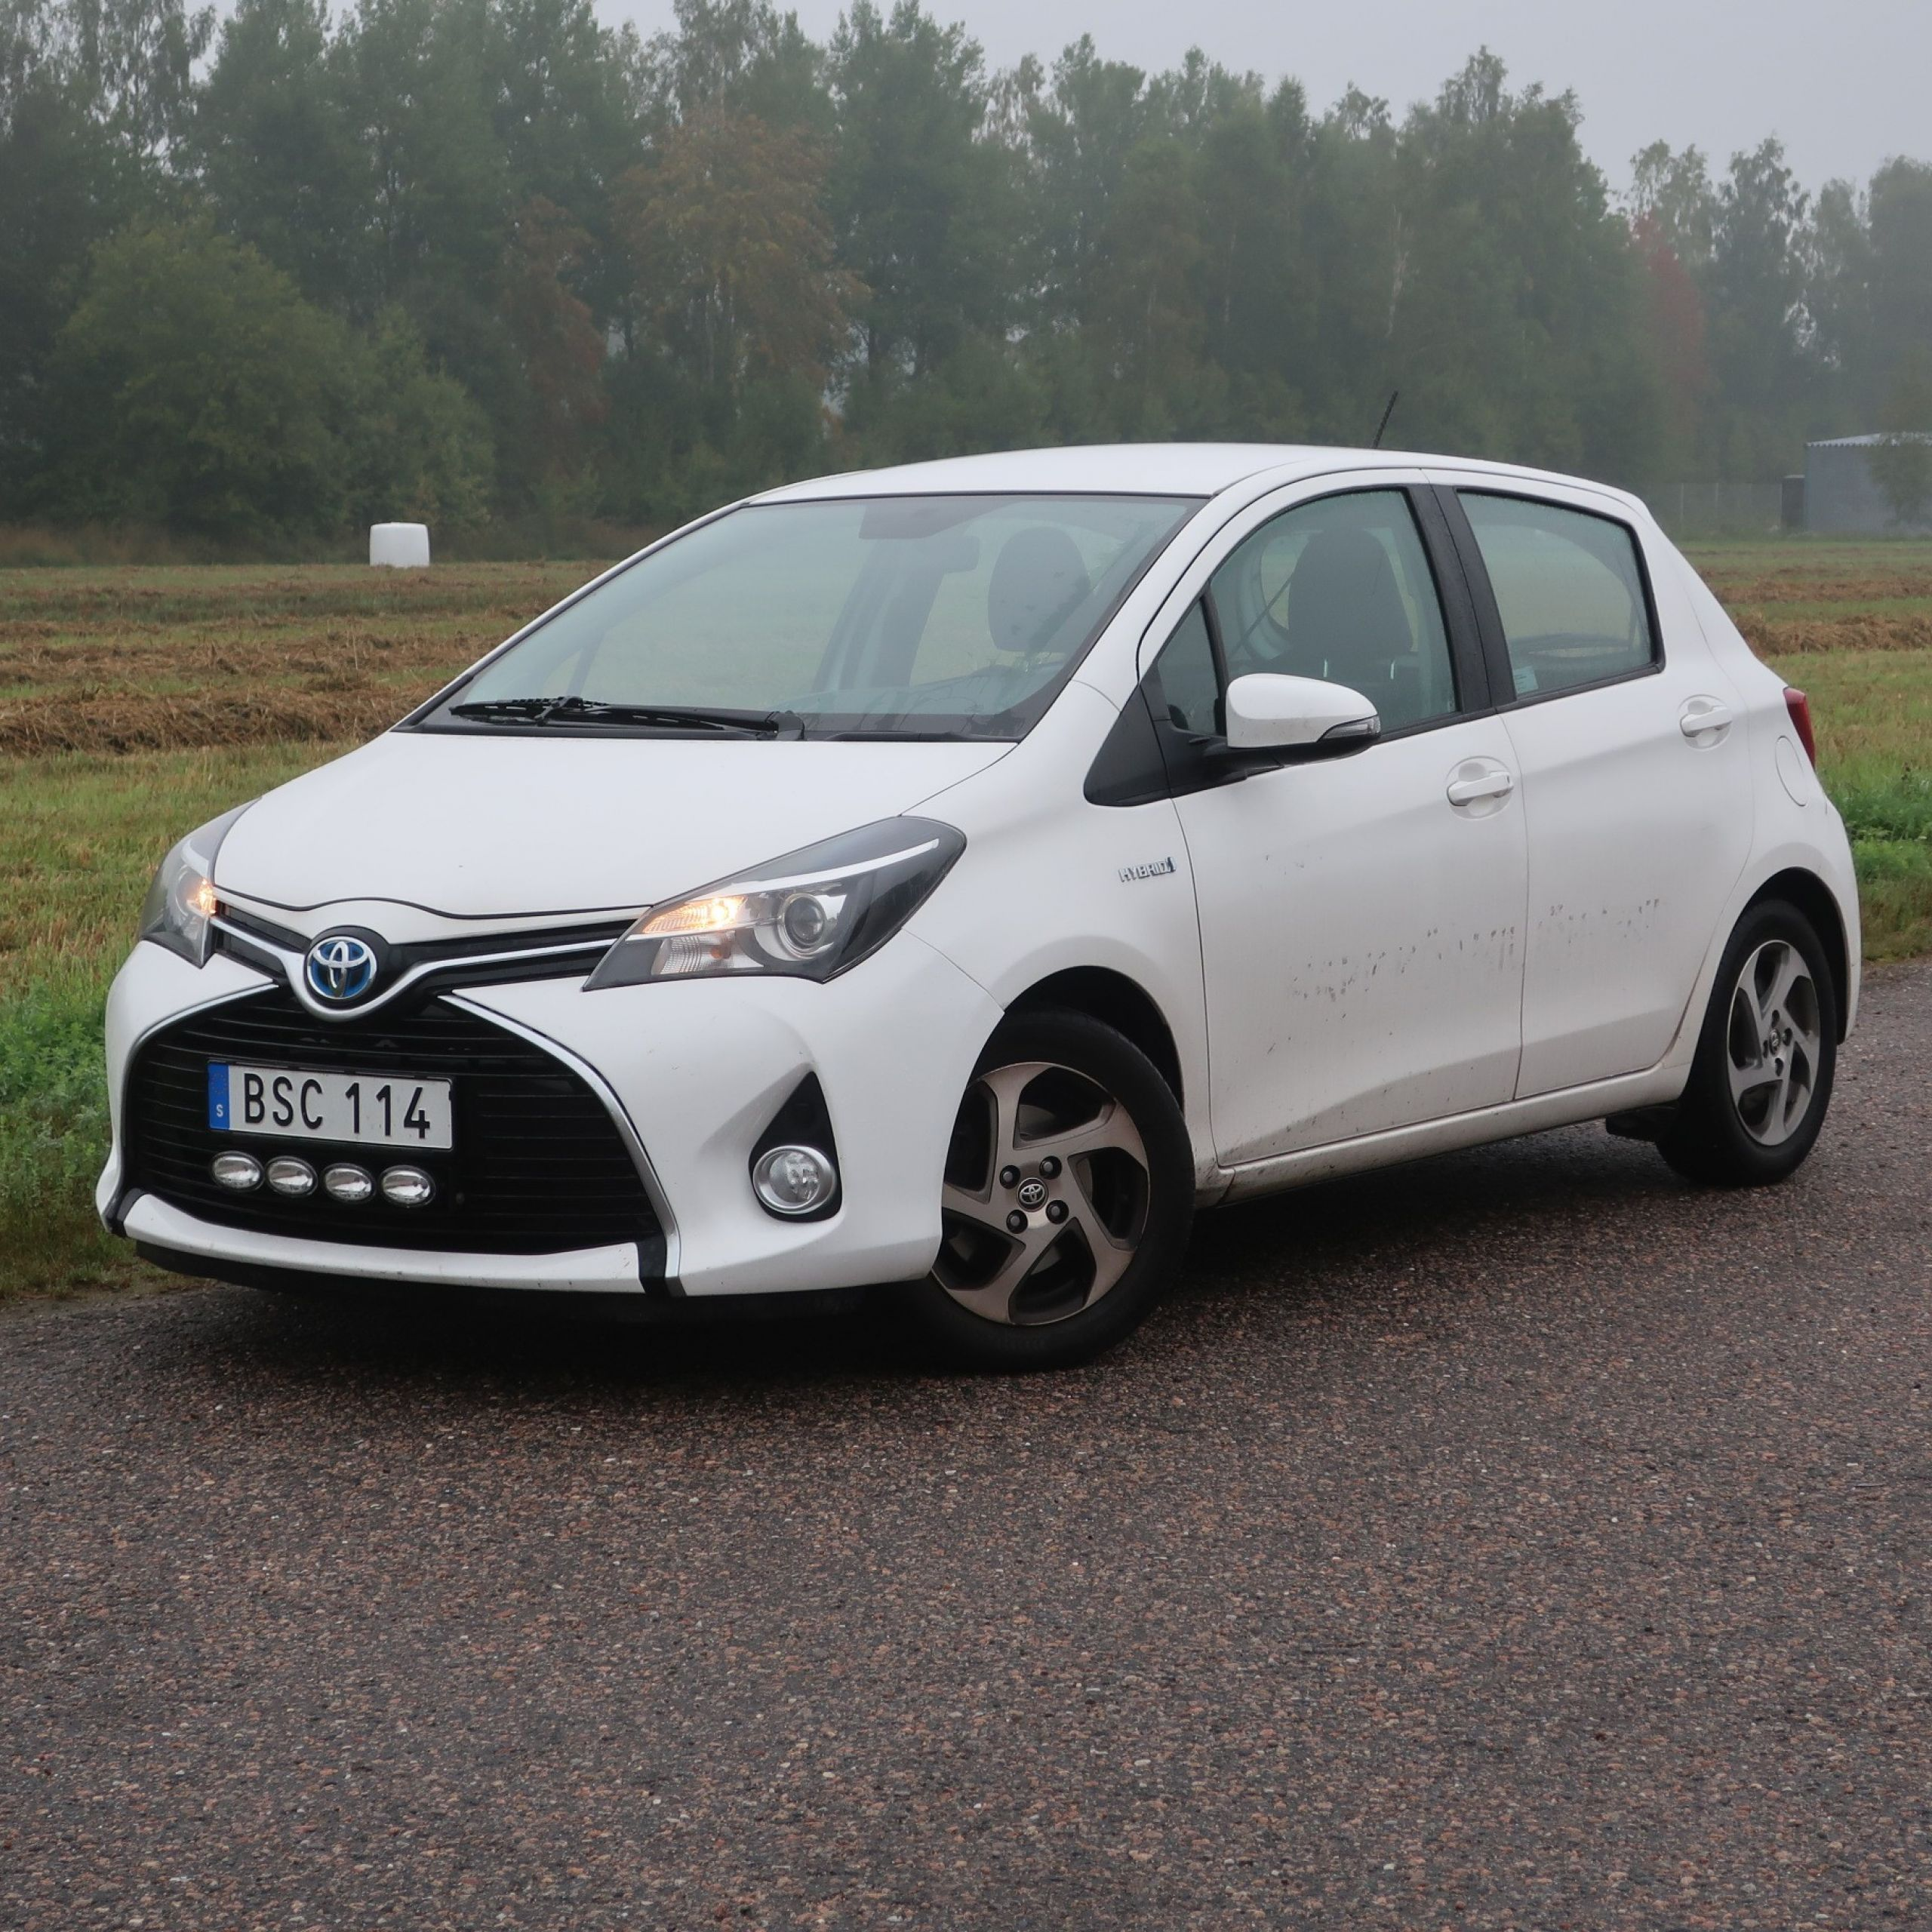 Yaris for Sale Awesome toyota Yaris Hybrid 1 5 Hsd 15 [bsc114] Ps Auction We